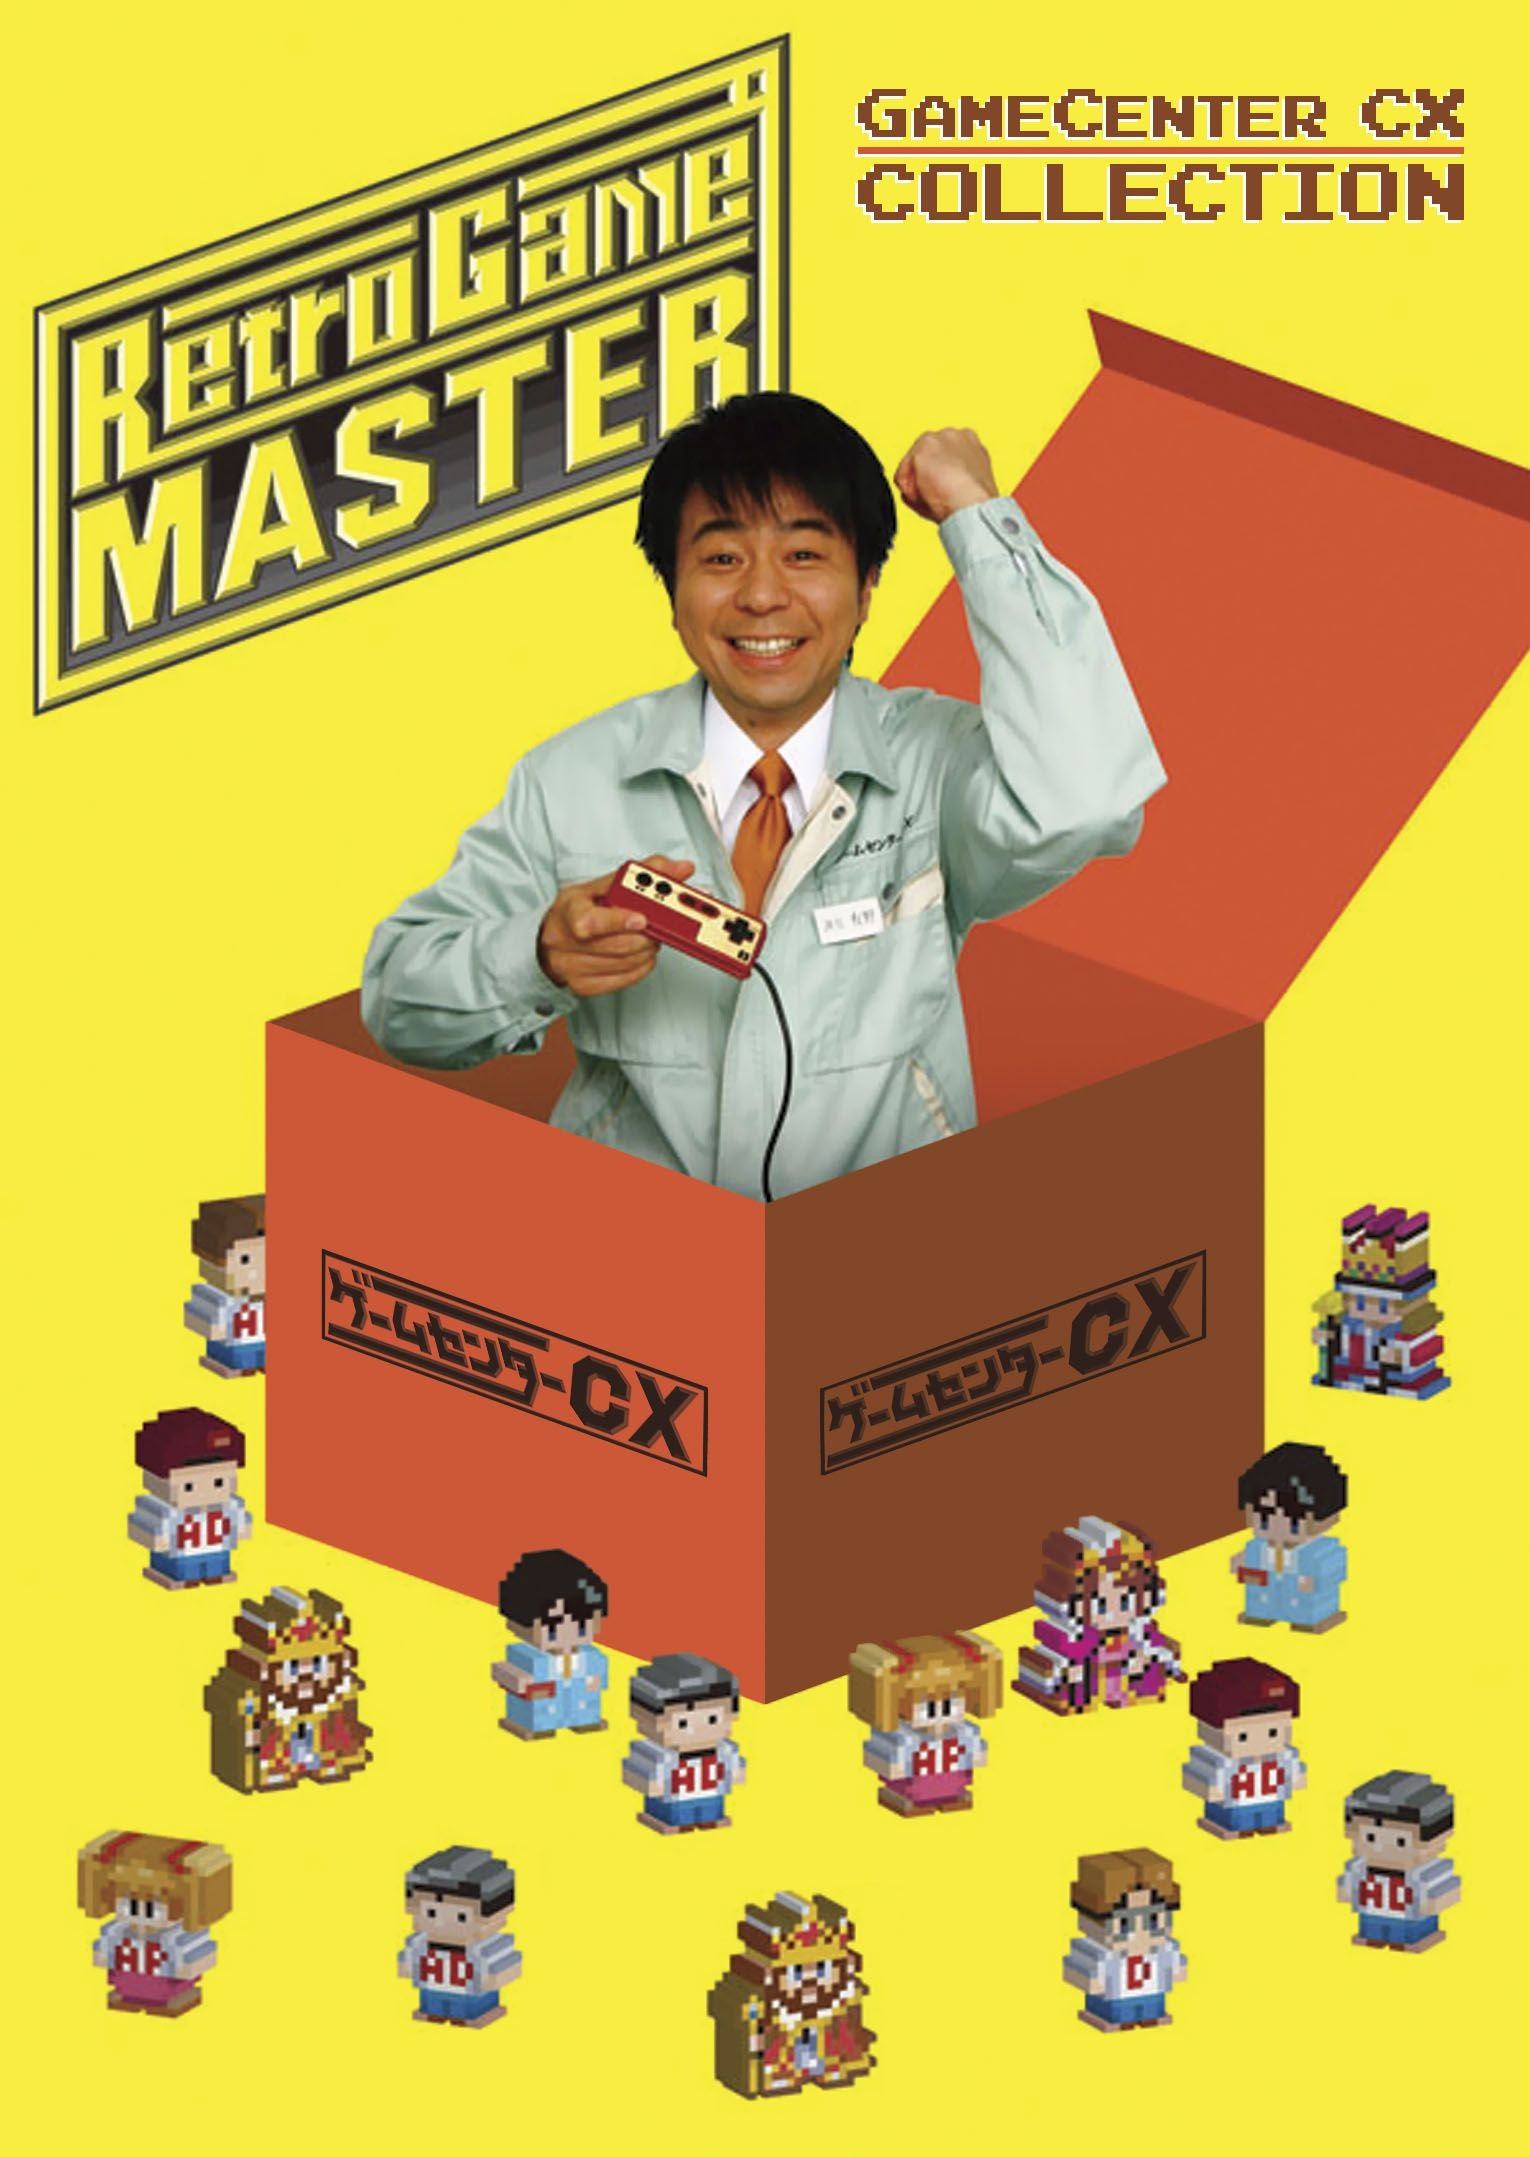 Retro Game Master: The Game Center CX Collection by Eastern Star